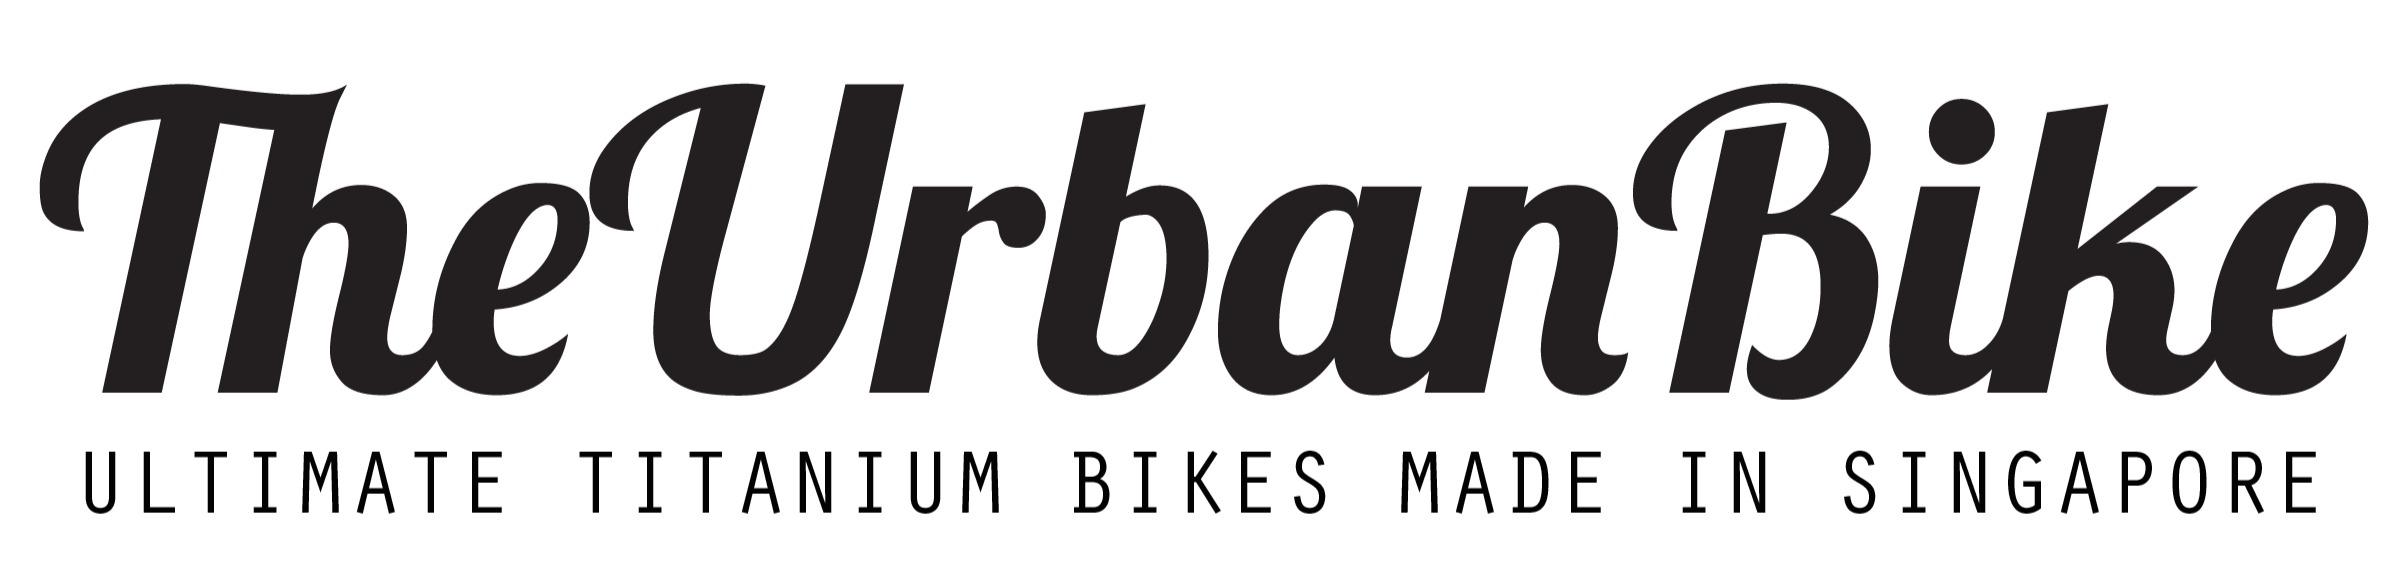 The urban bike